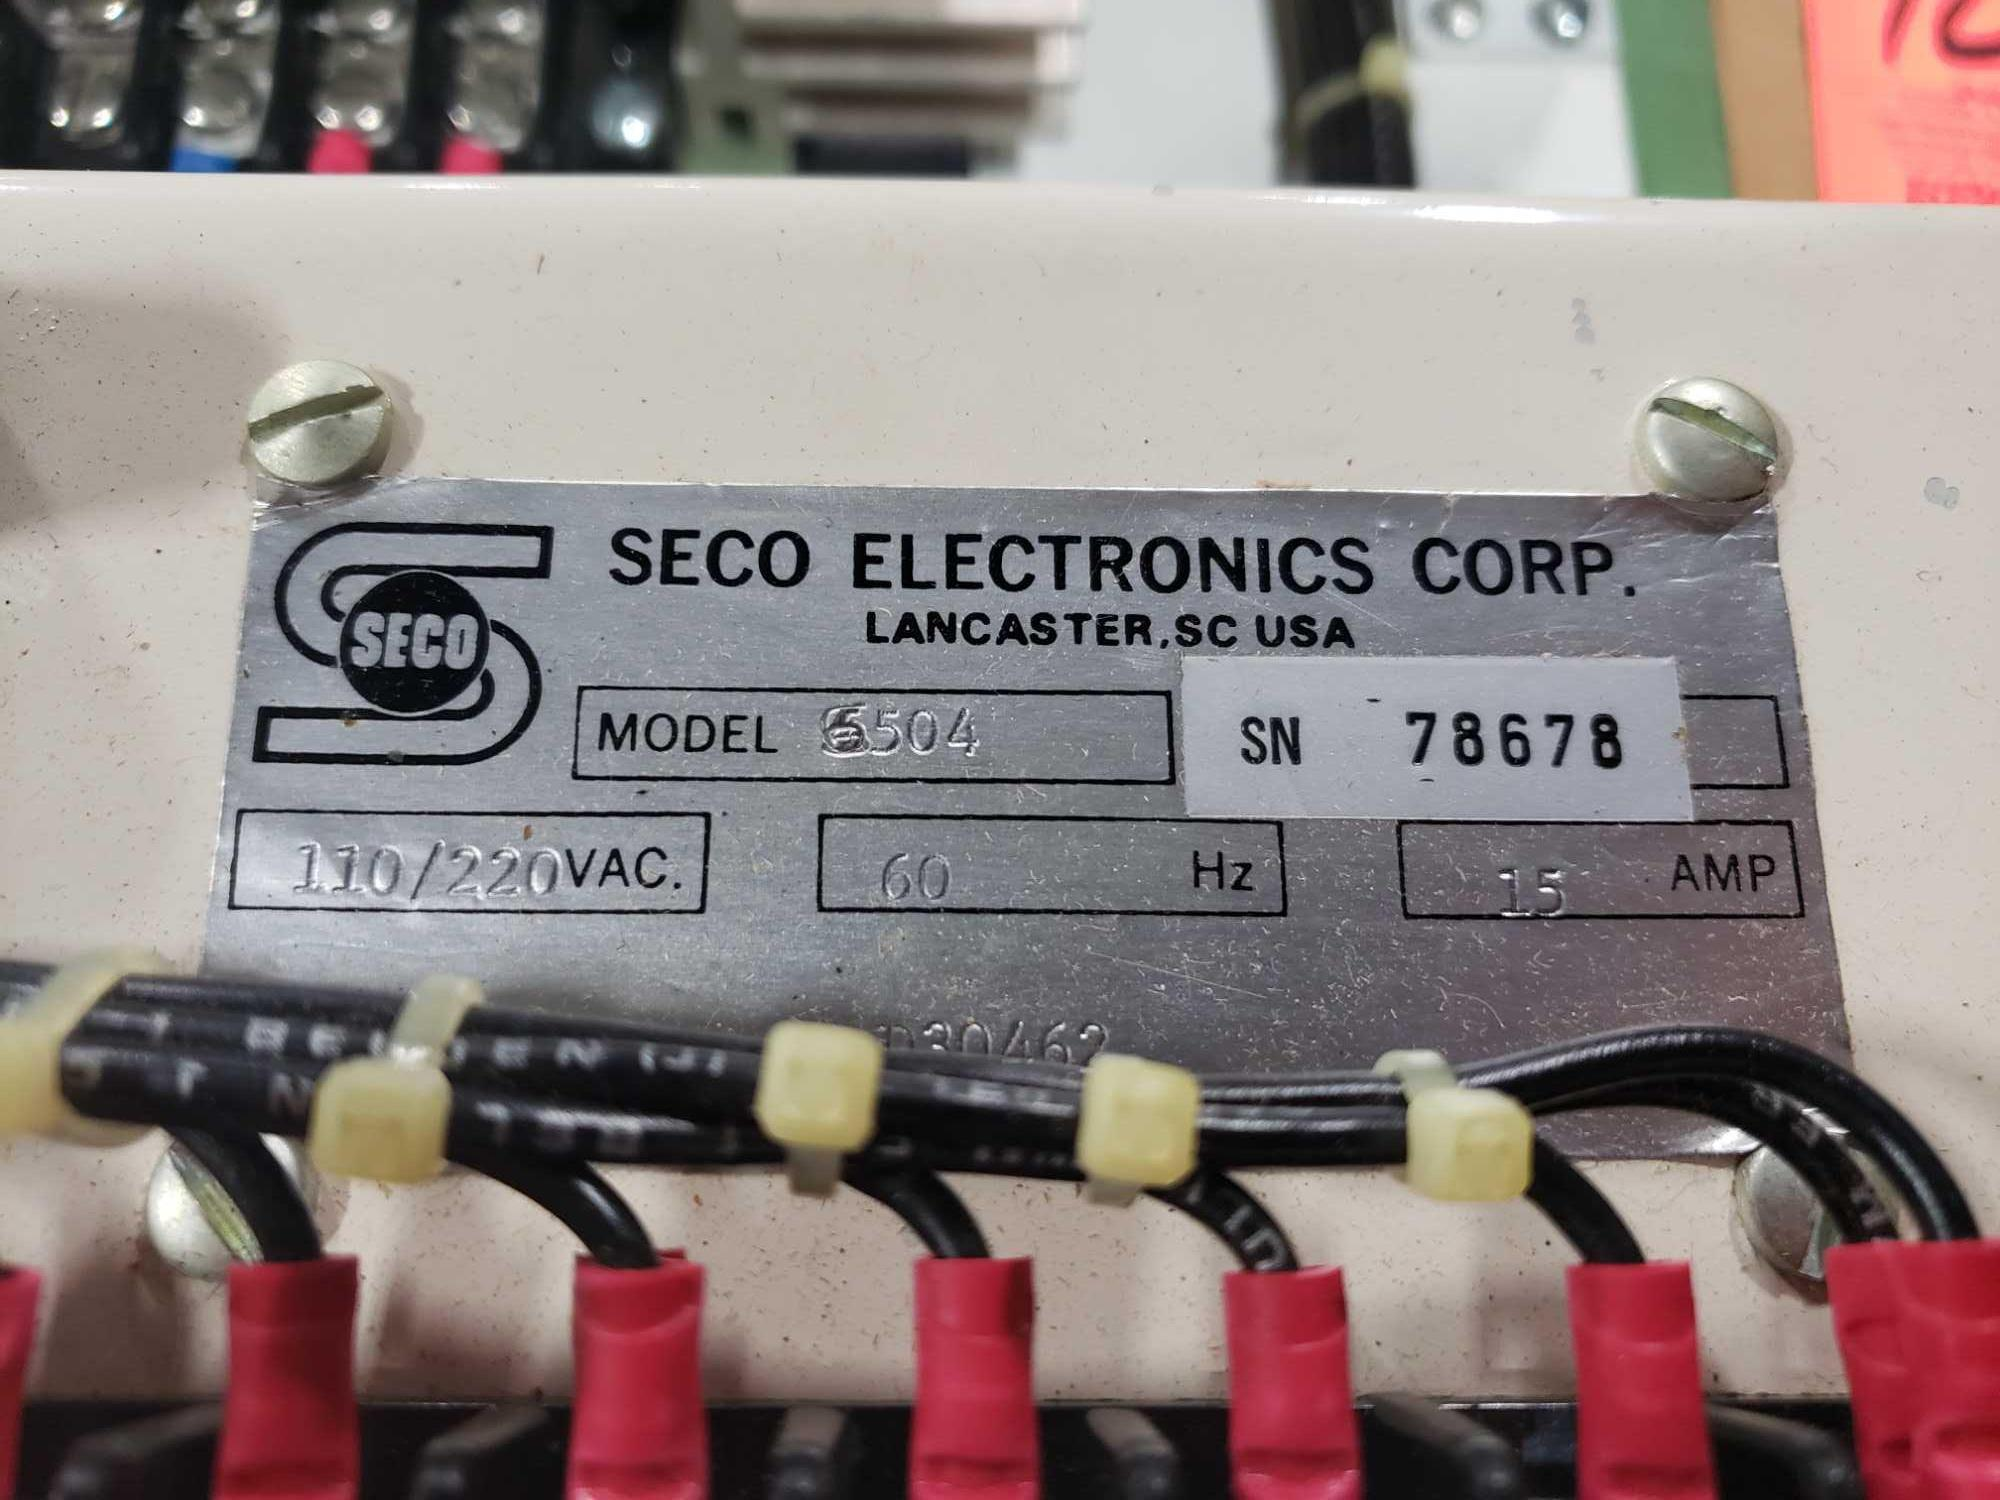 Seco Electronics model 86500 SCR motor control part 6504-N0.. New in box. - Image 2 of 3